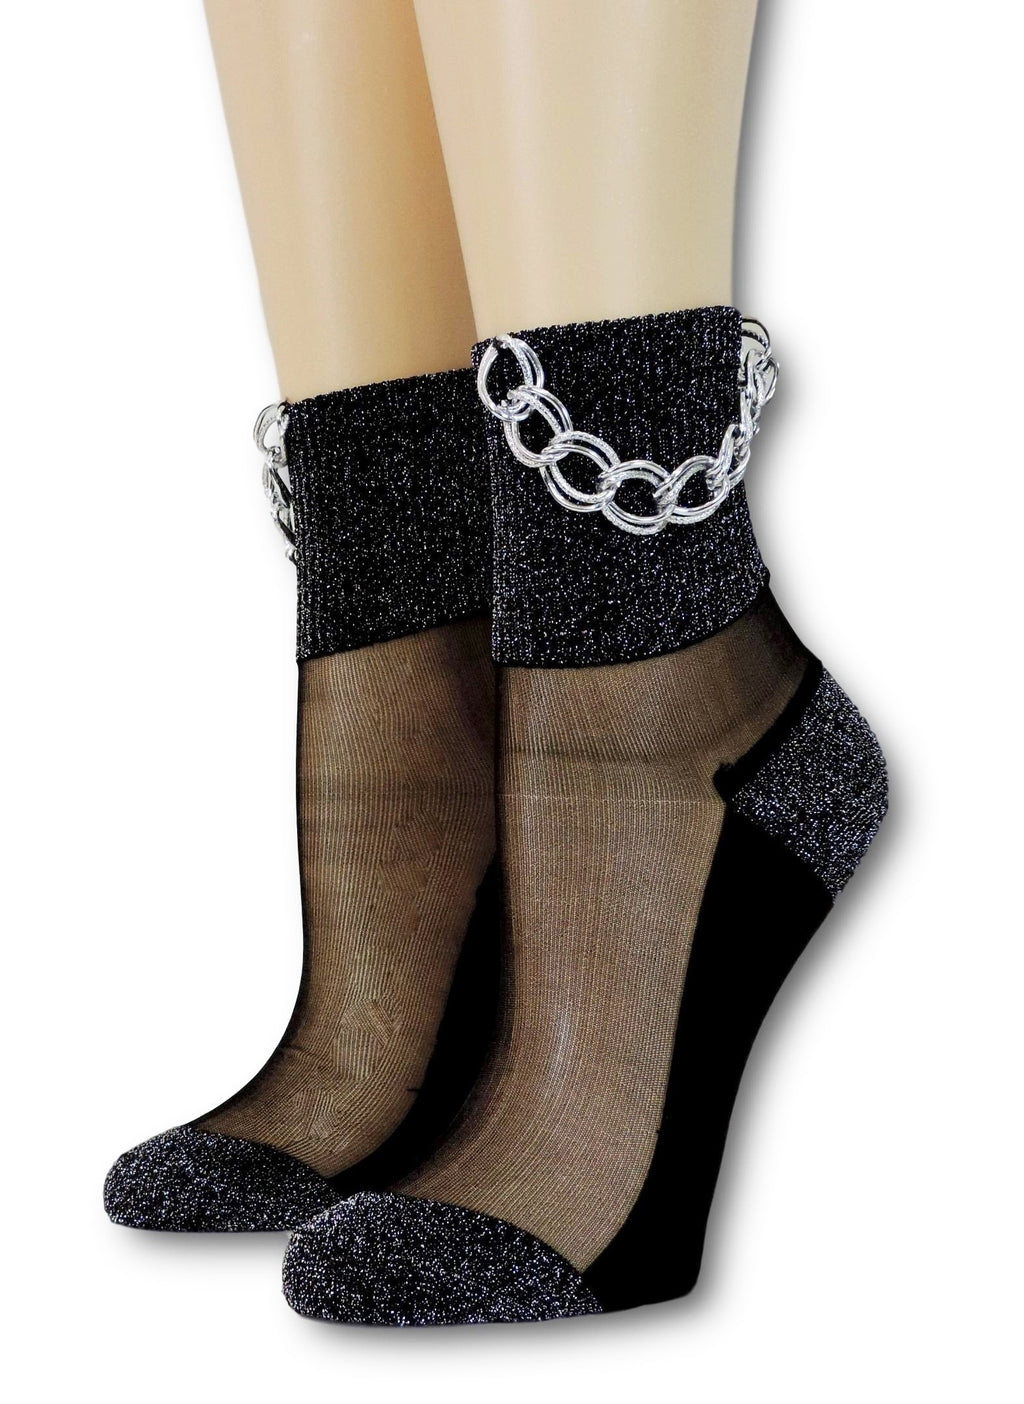 Glitter Hip Hop Socks with Chain - Global Trendz Fashion®